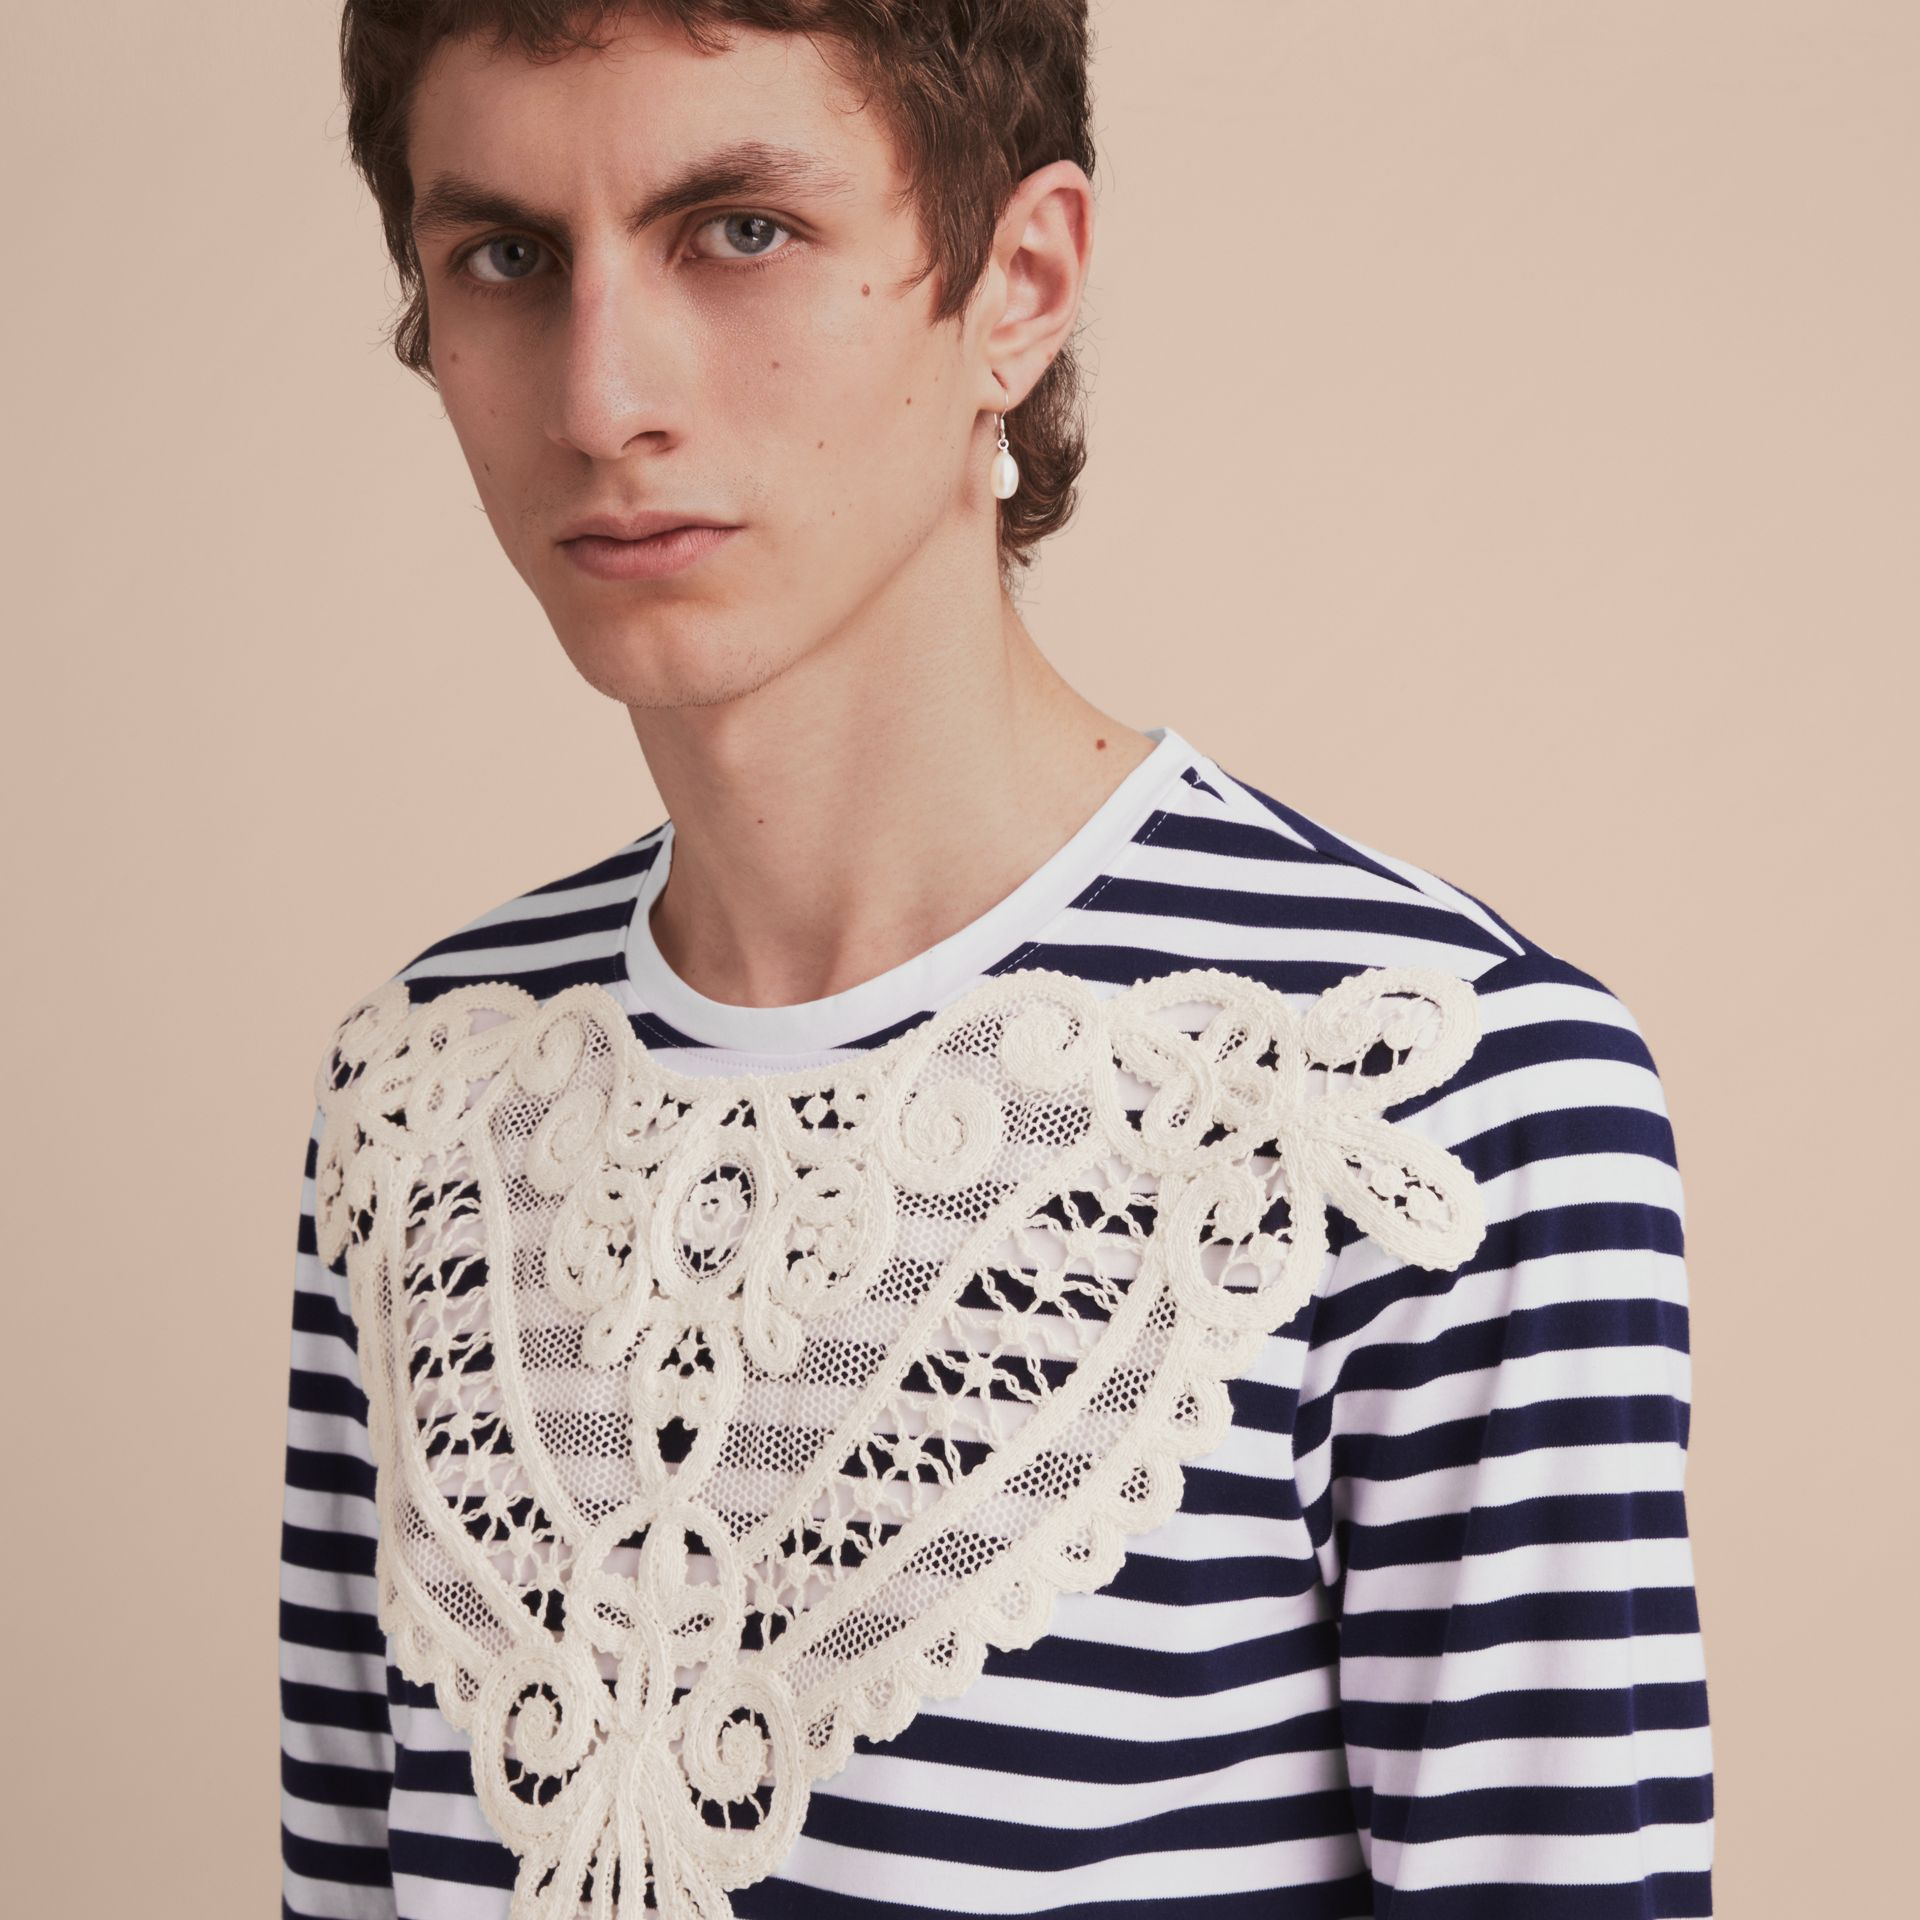 Unisex Breton Stripe Cotton Top with Lace Appliqué in Indigo - Men | Burberry - gallery image 6